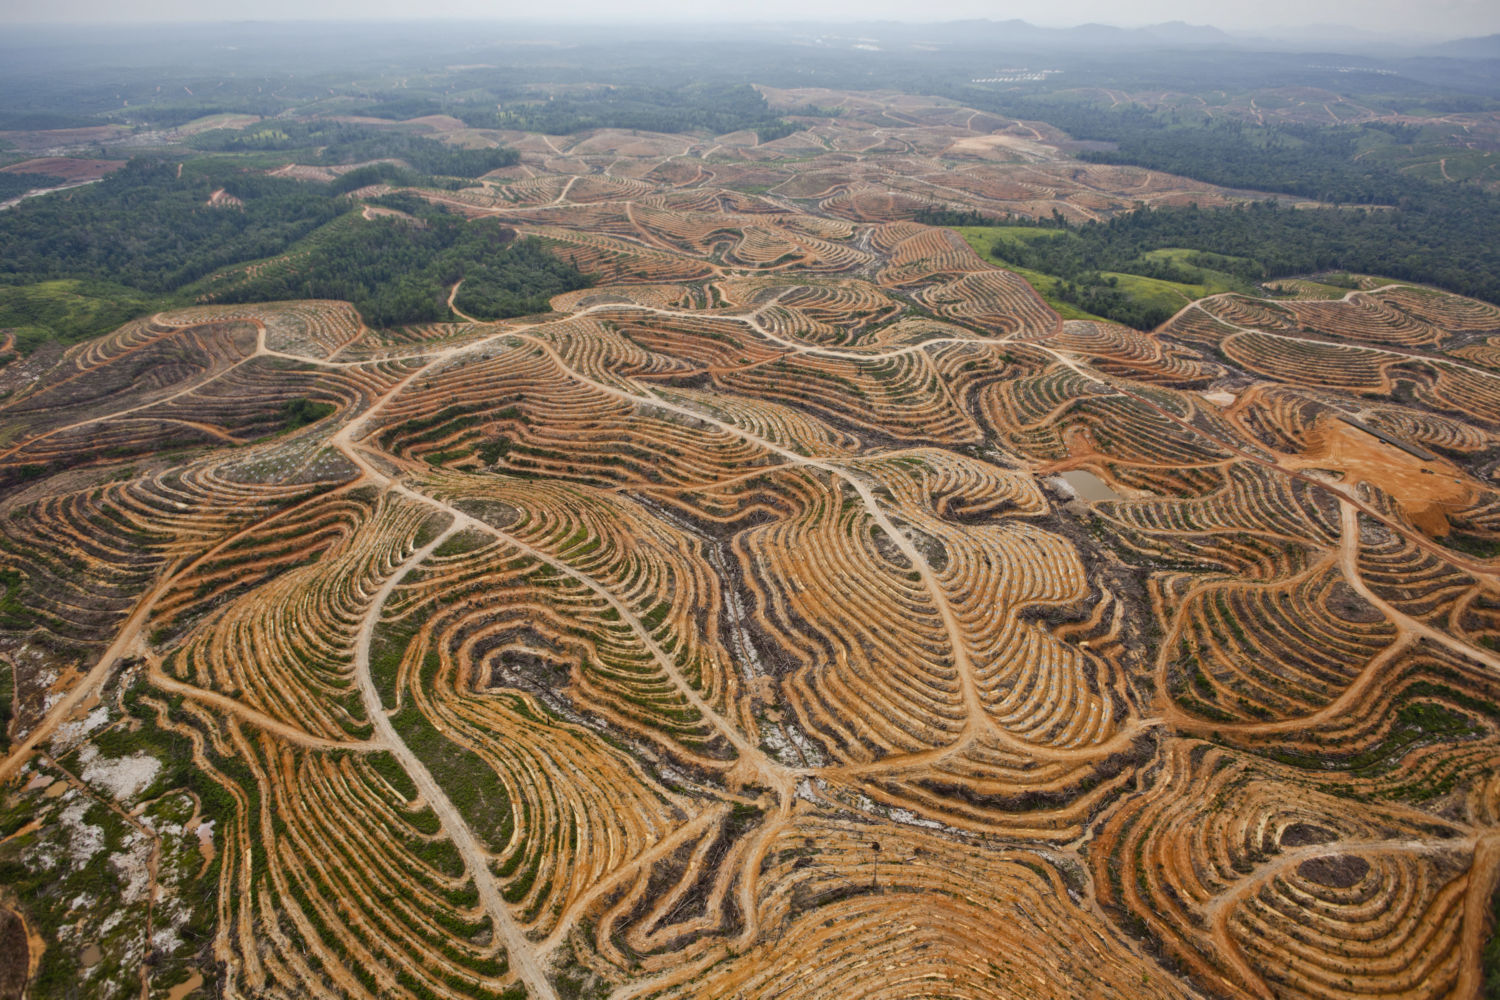 https://e360.yale.edu/features/tracking_commodities_to_save_world_forests_trase